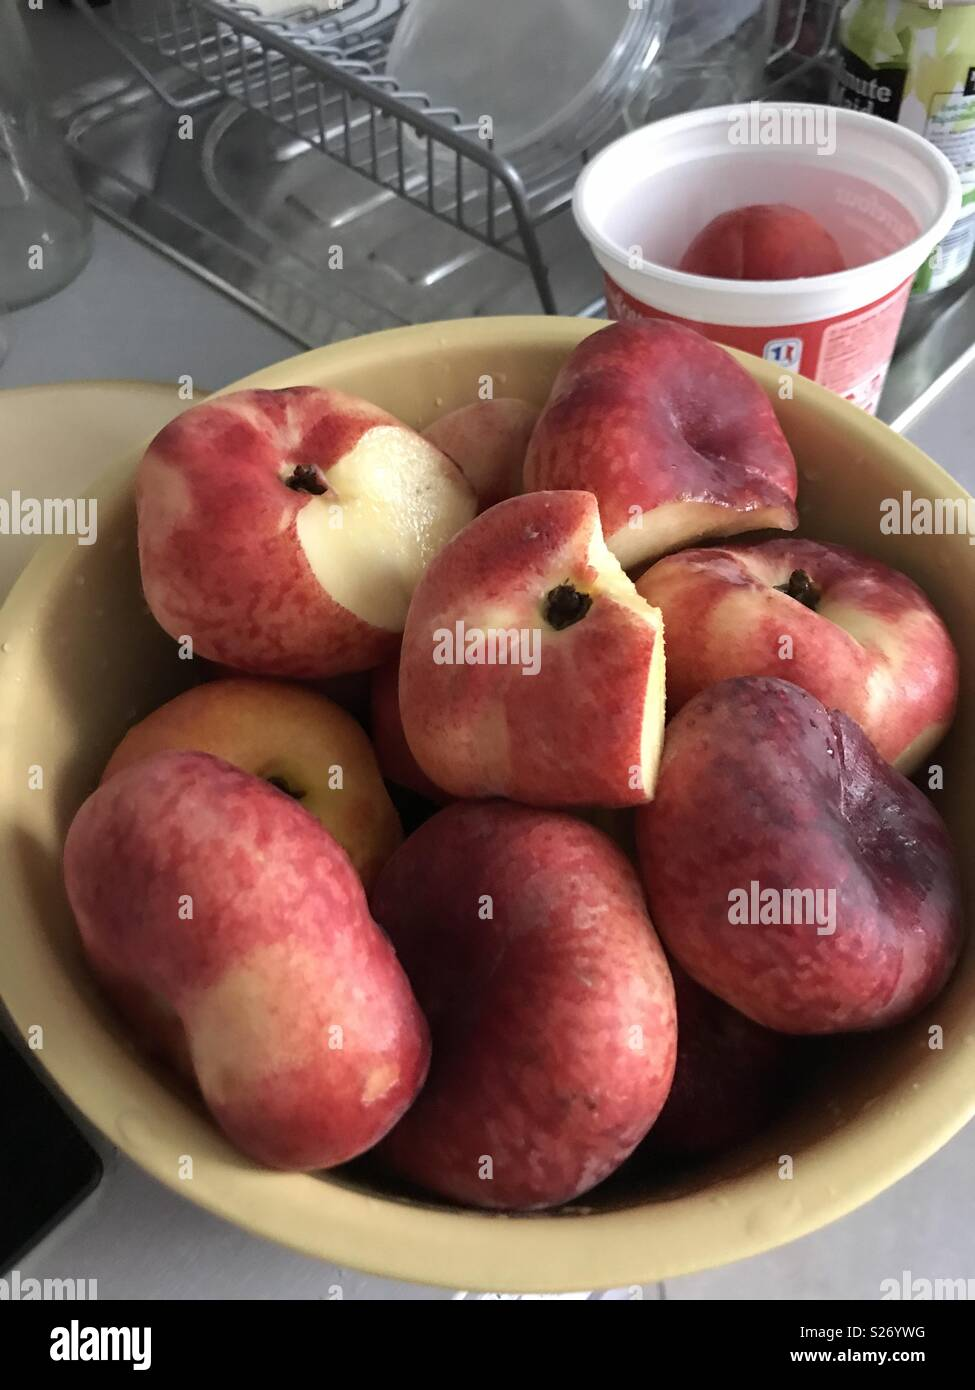 Paris, France. Partially spoiled peaches, cut and kept in a bowl - Stock Image